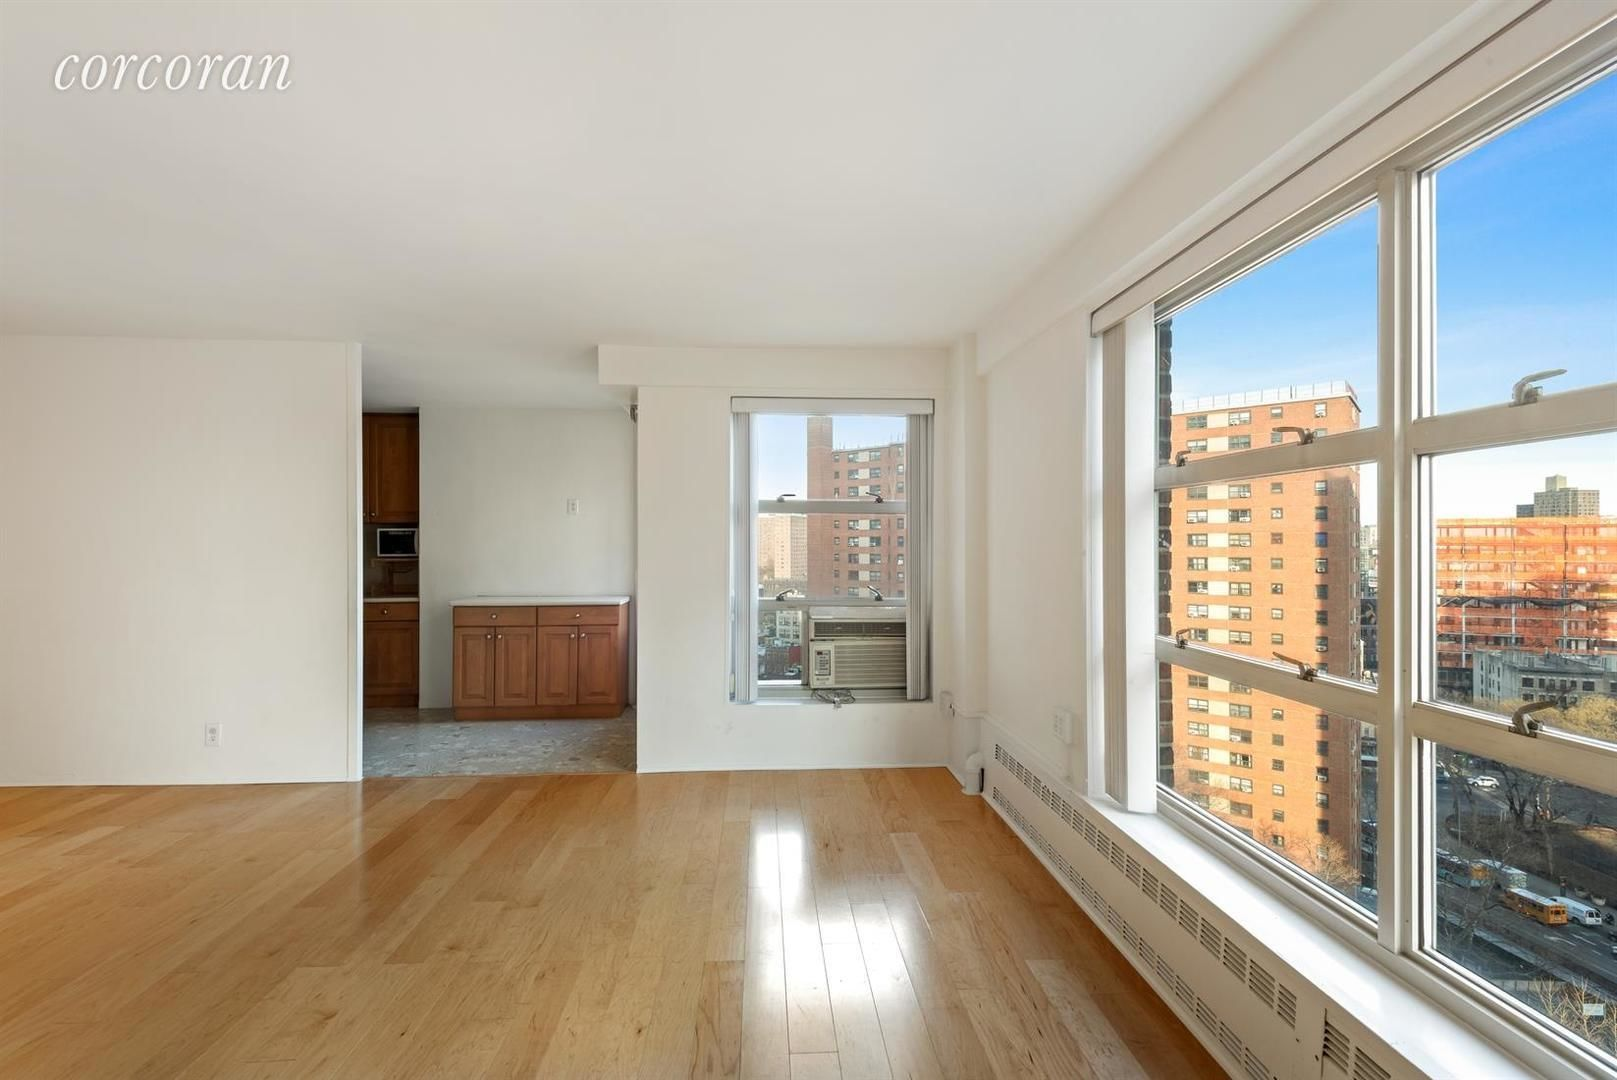 Apartment for sale at 80 La Salle Street, Apt 14D